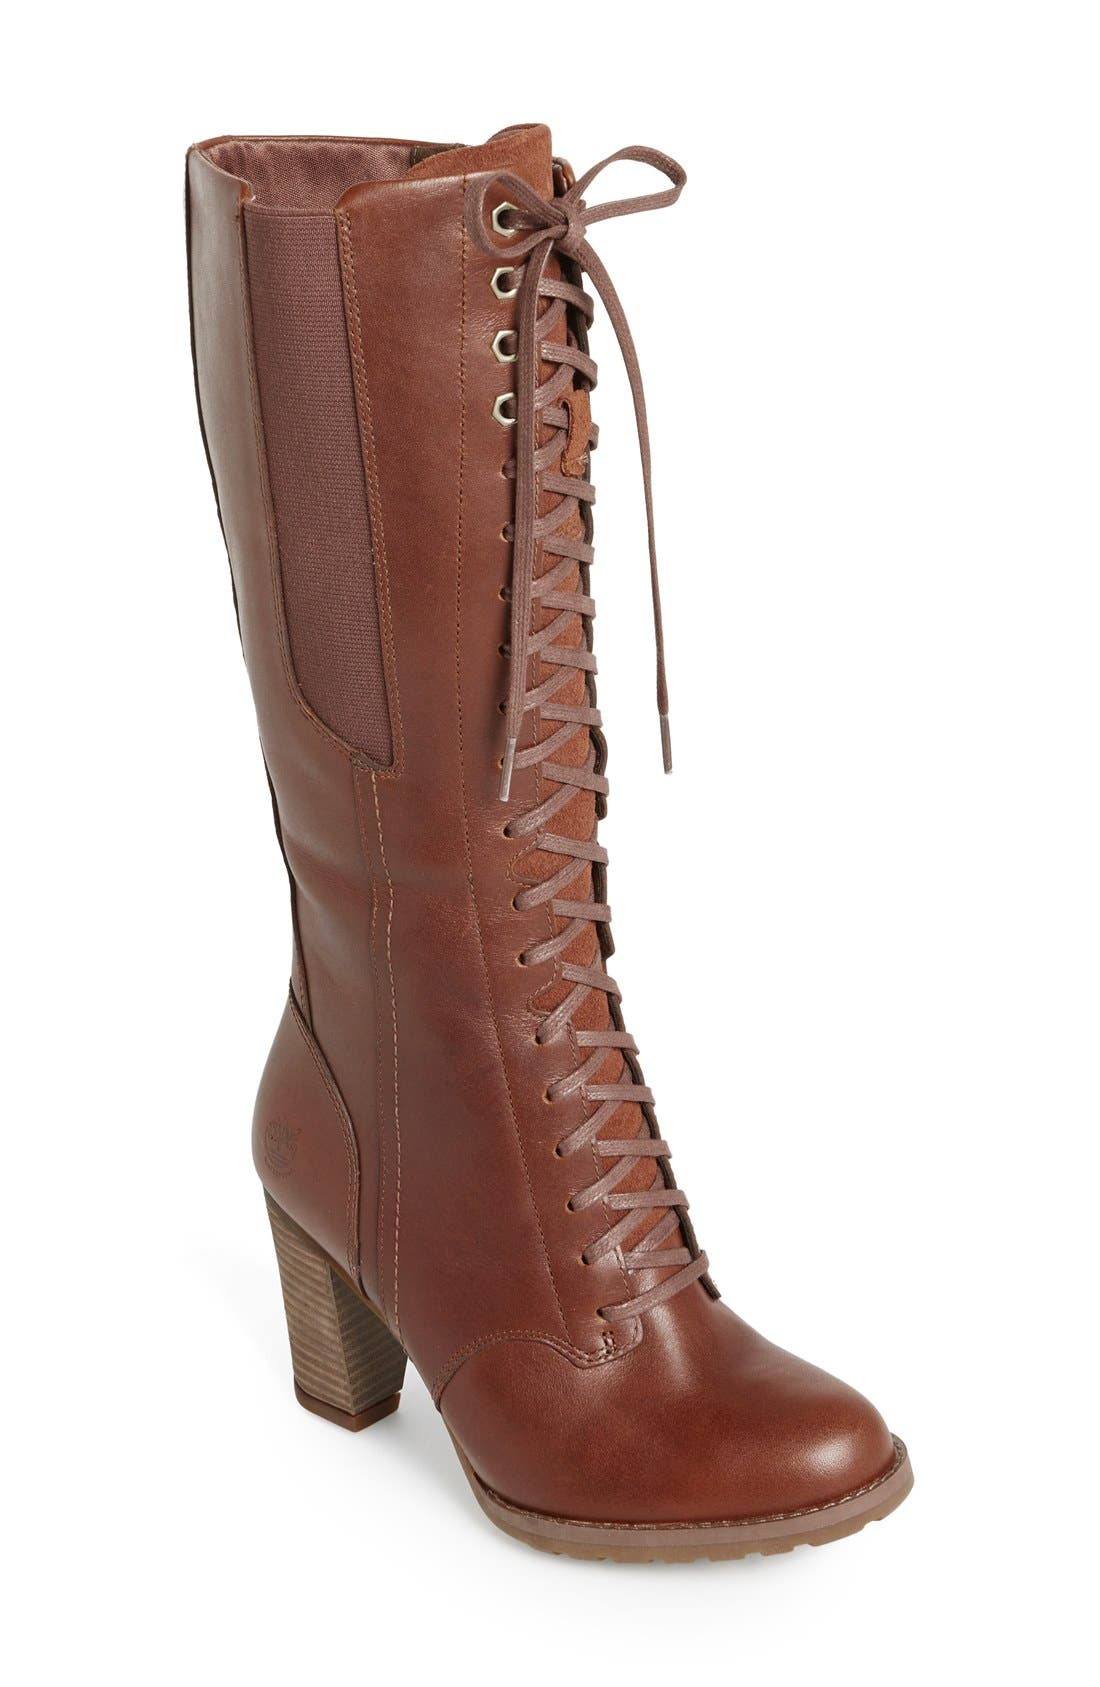 Alternate Image 1 Selected - Timberland Earthkeepers® 'Stratham Heights' Waterproof Tall Boot (Women)